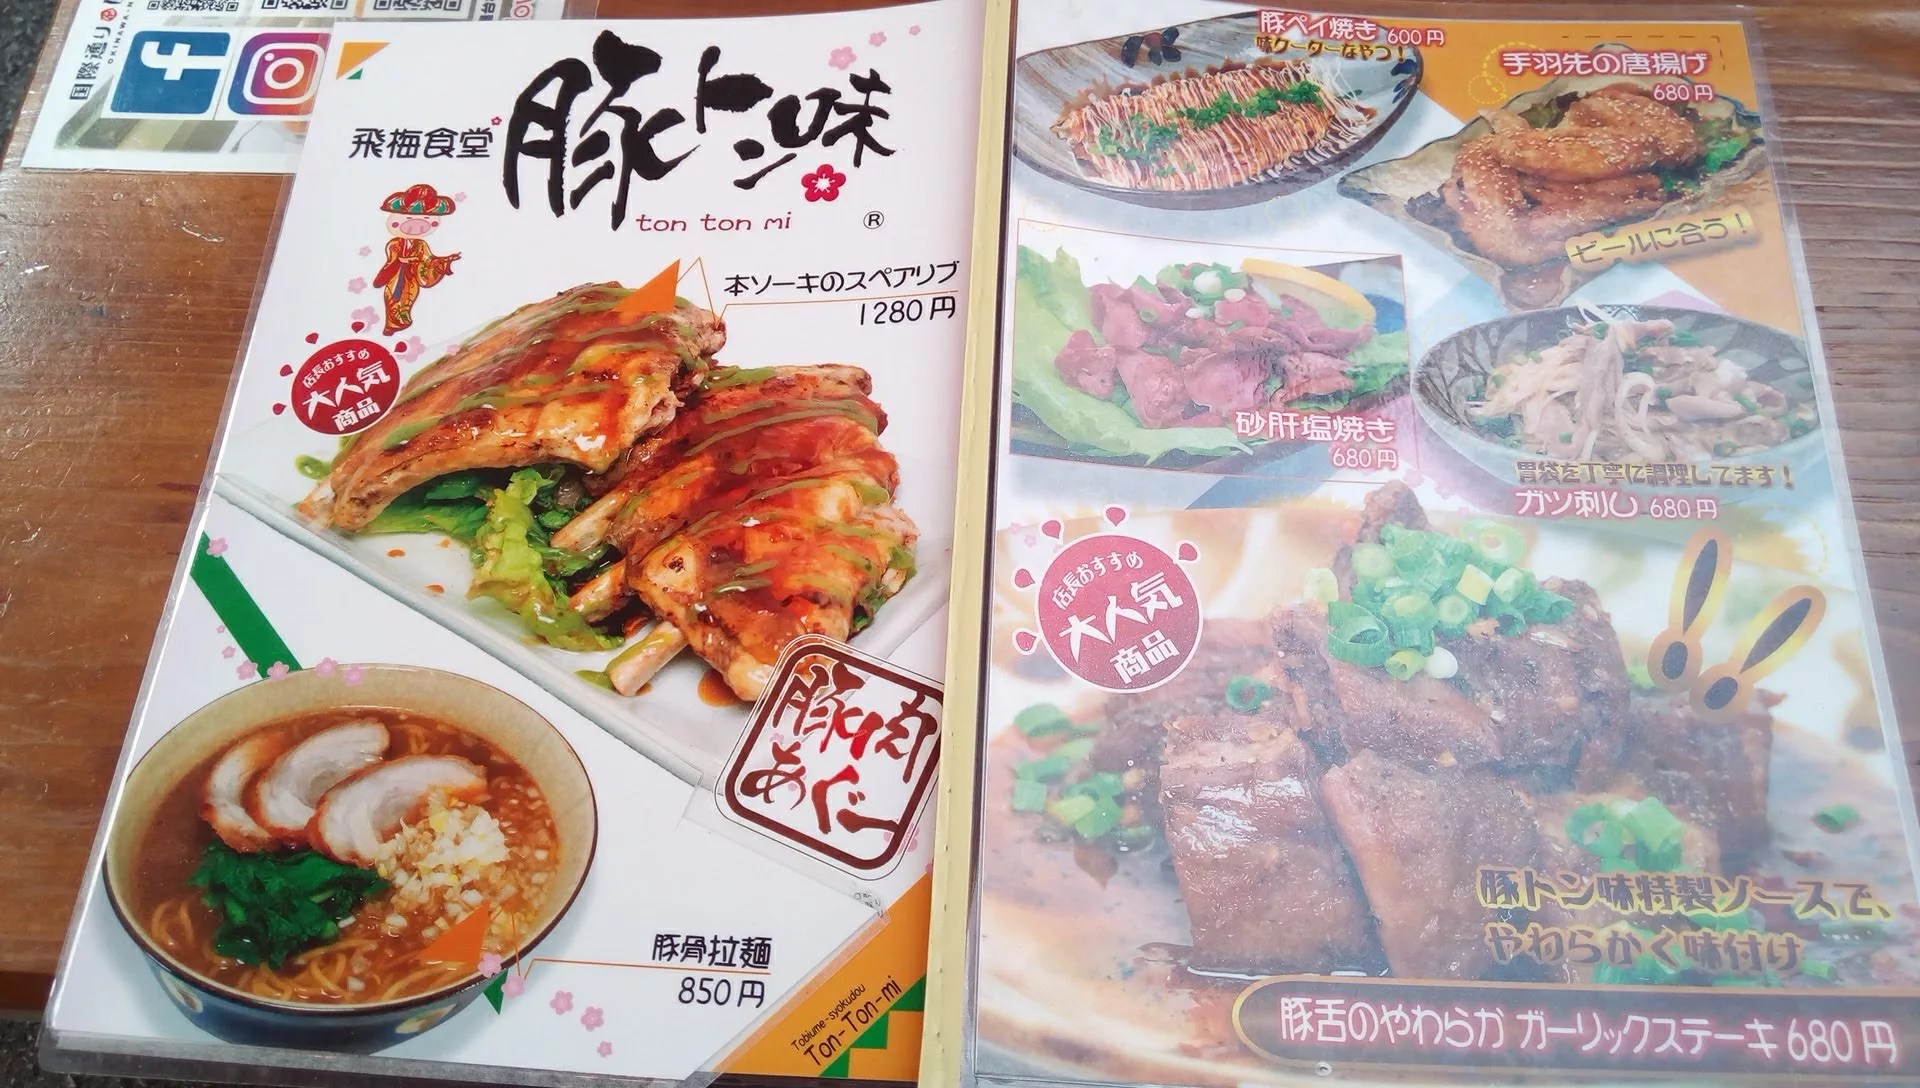 the food menu of Tontonmi 1